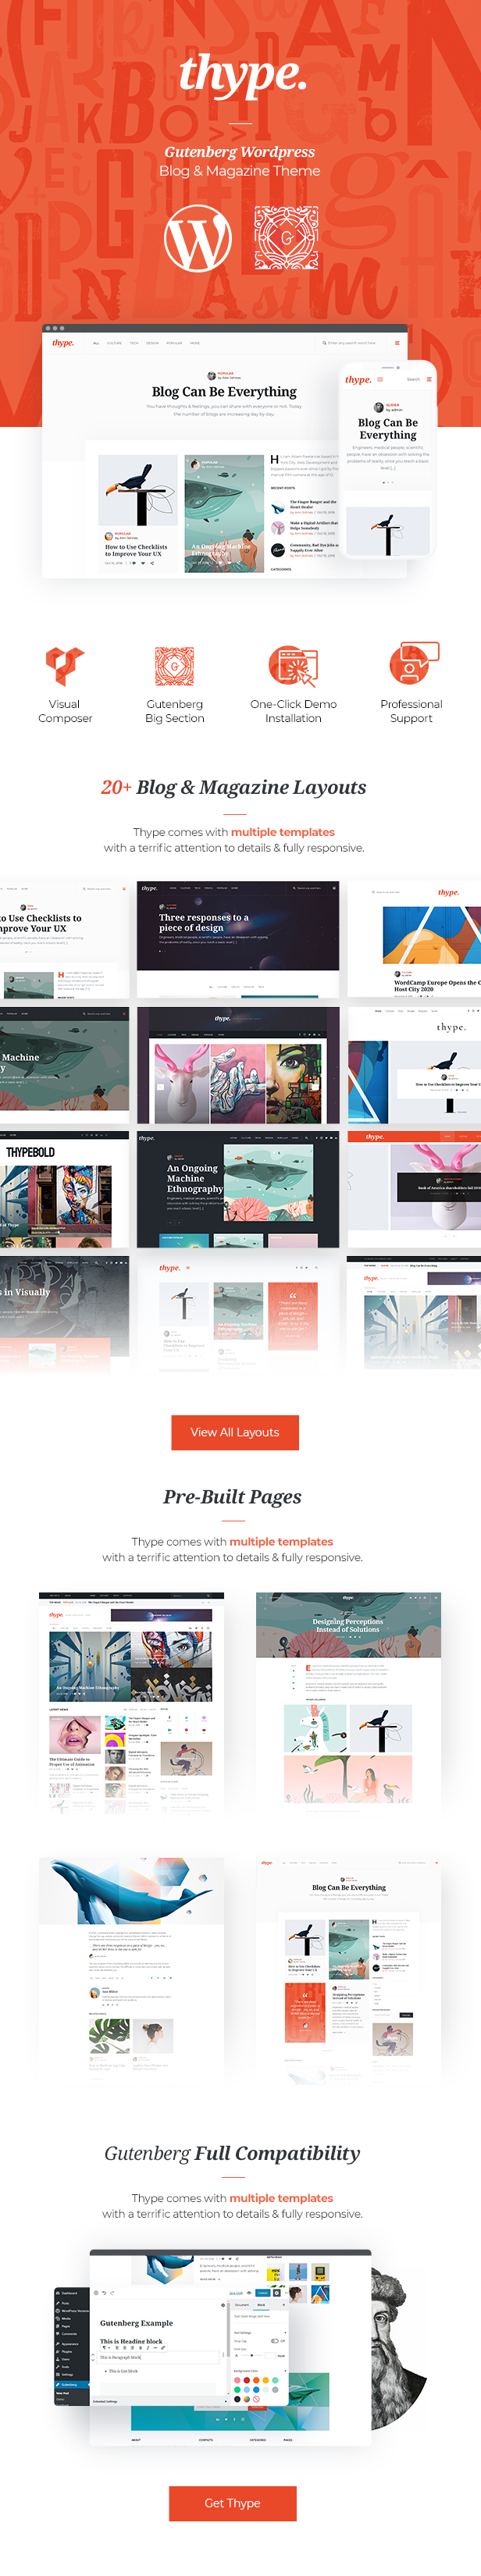 Thype | Gutenberg WordPress Blog & Magazine Theme - 1